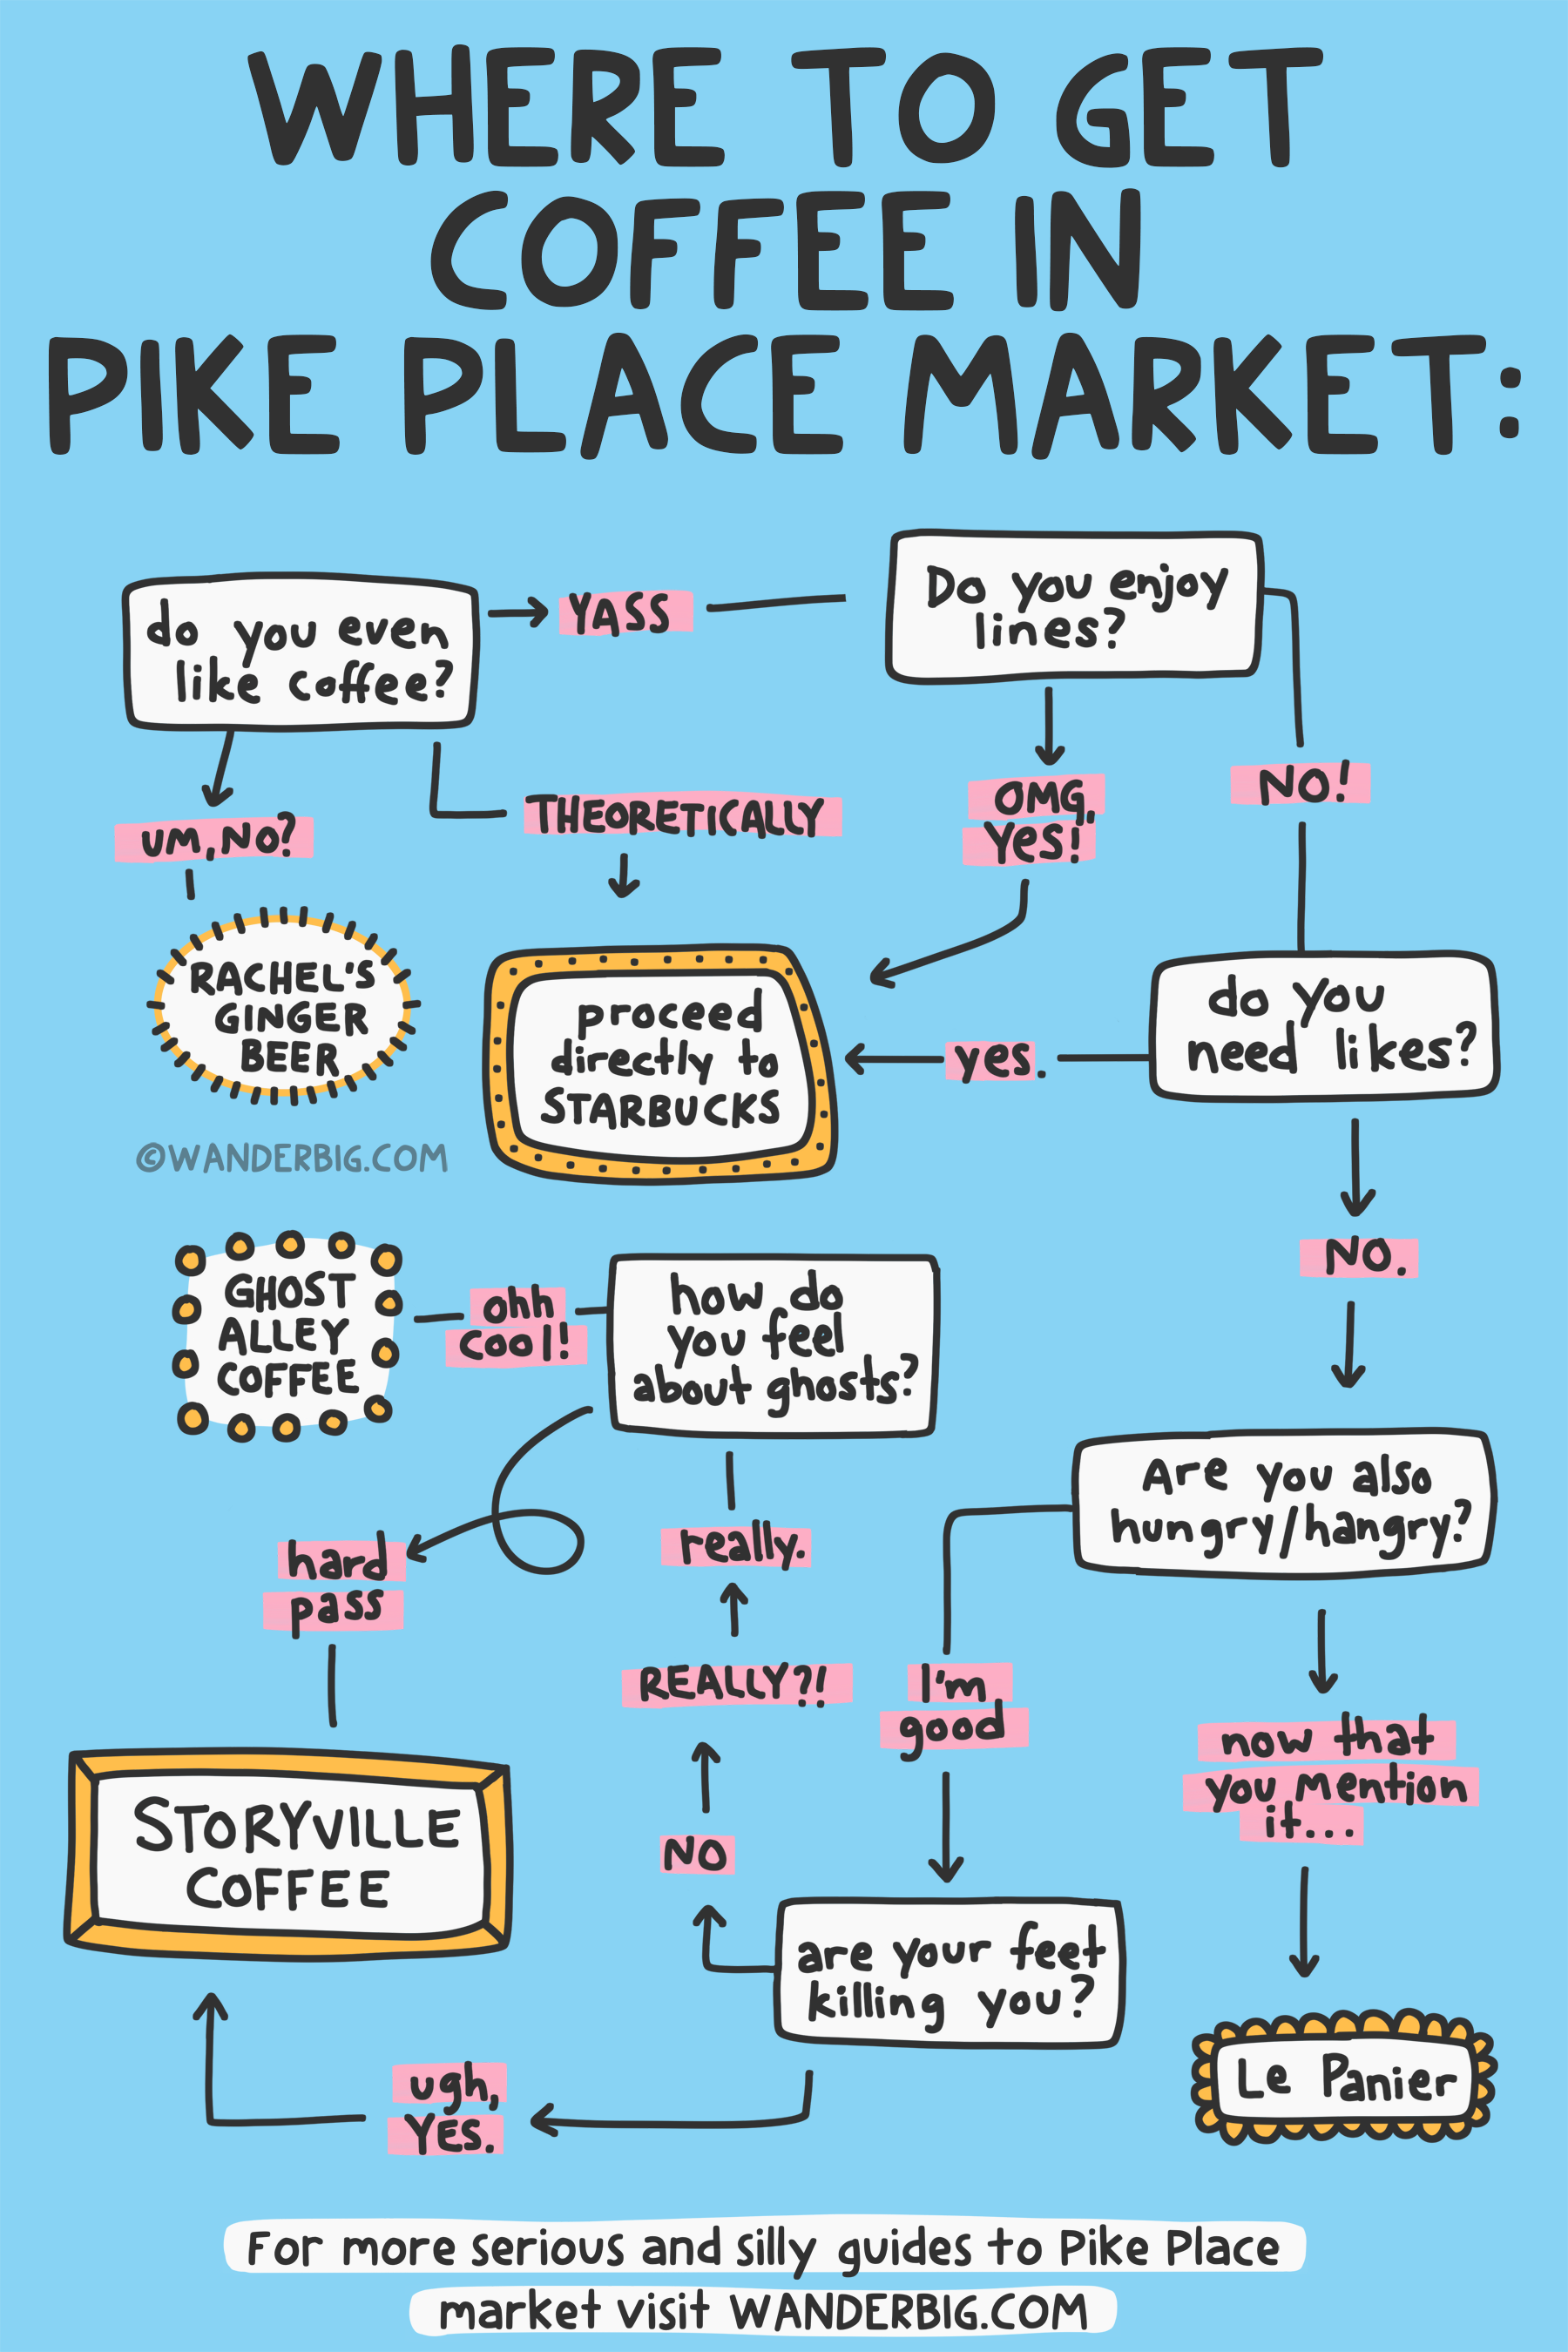 A serious and silly flow chart for deciding where to get coffee in seattle's pike place market. See detailed image description in article.